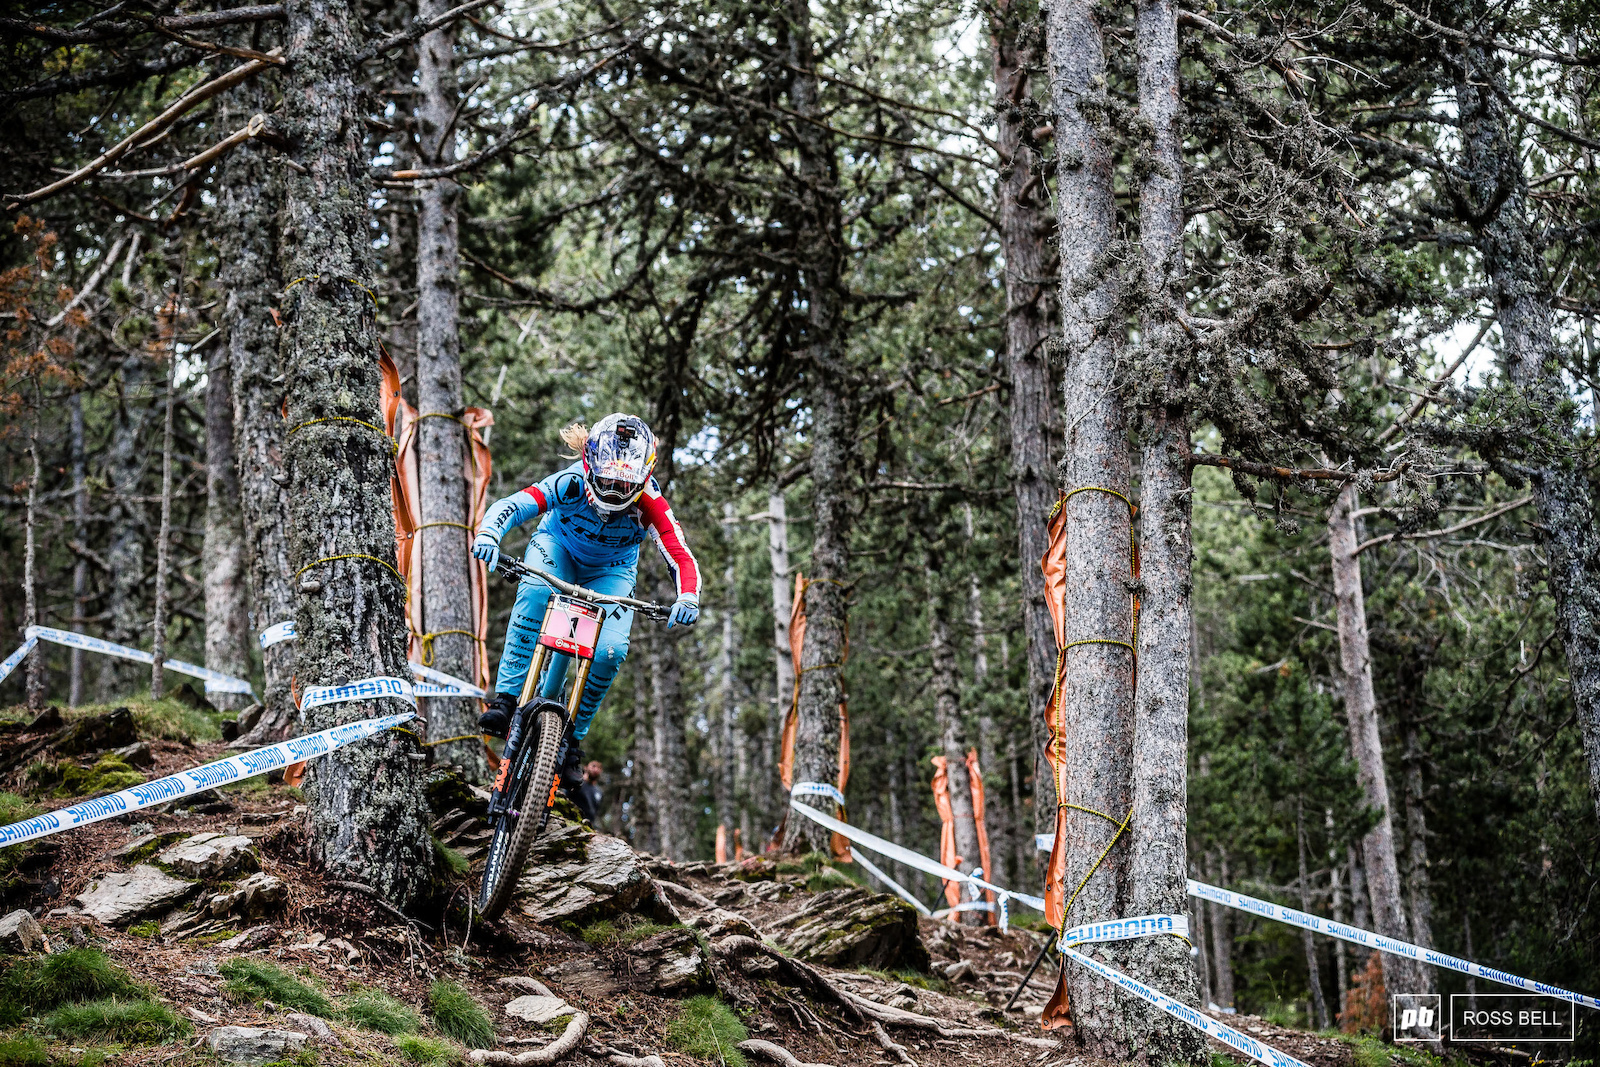 Rachel Atherton took control of the overall last weekend but was pipped to the win by Tahnee Seagrave. Those two look set to battle out the remainder of the season.